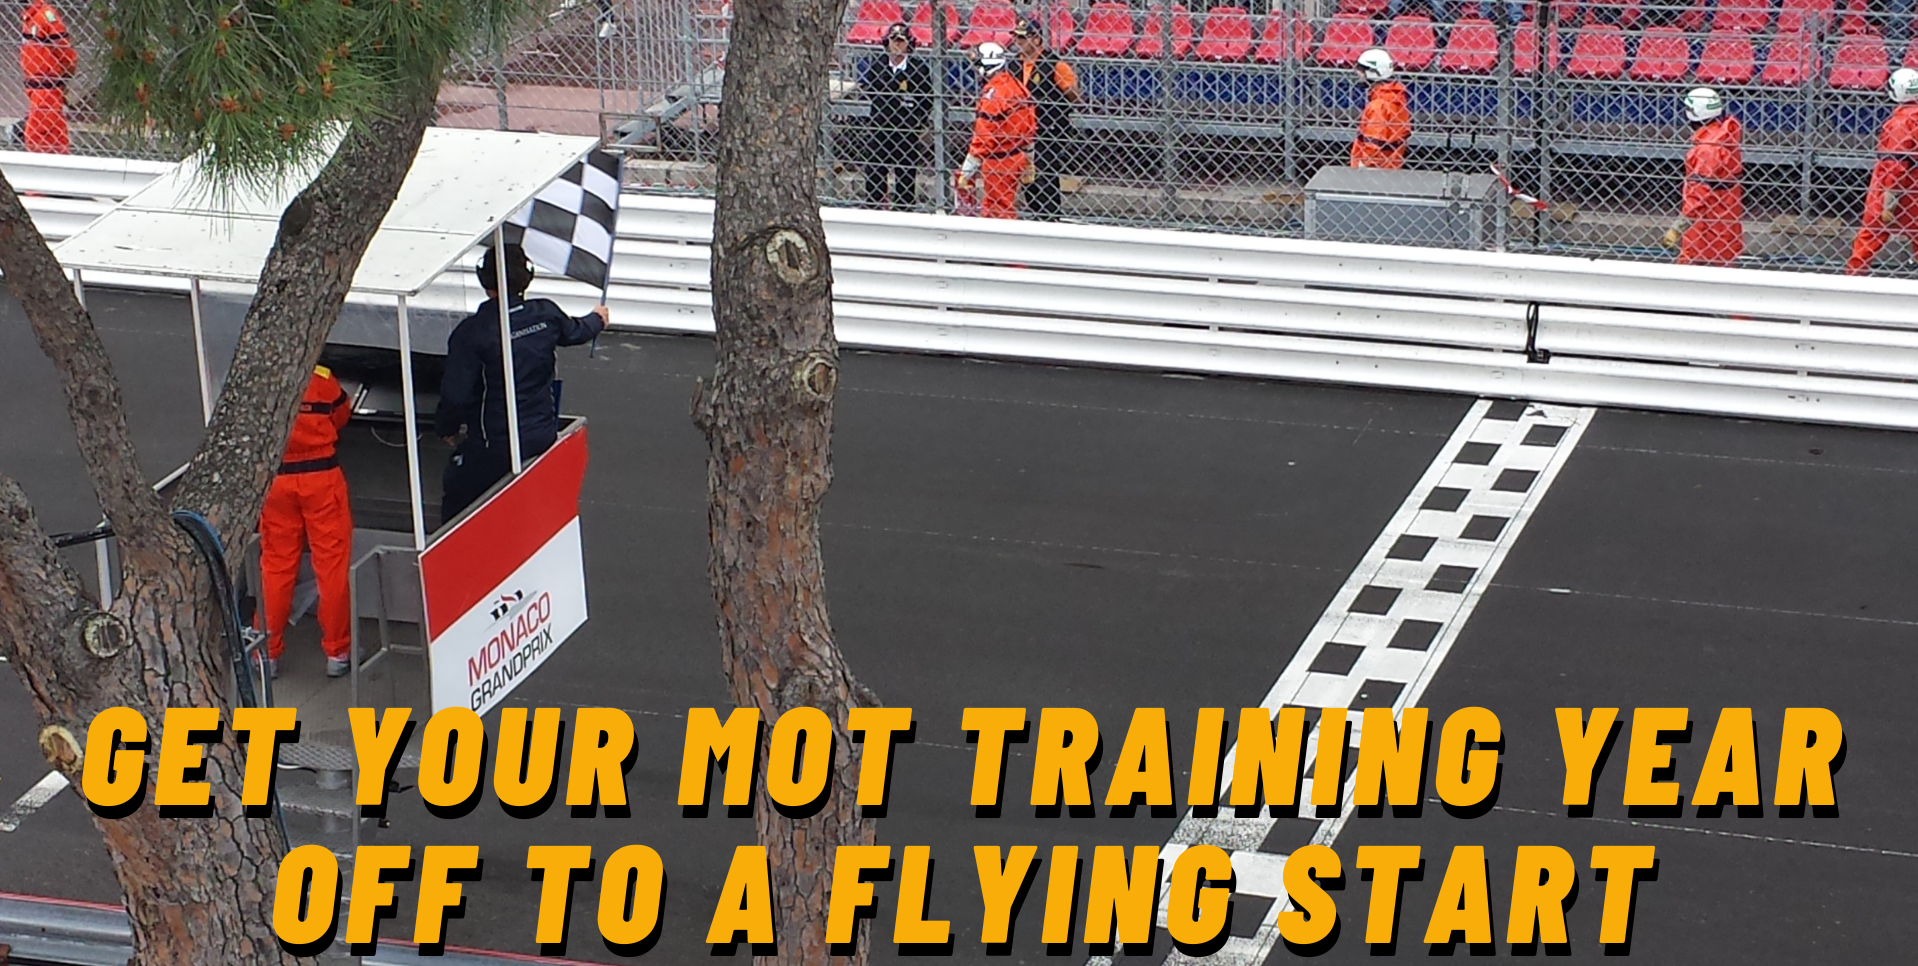 Get the 2021/22 MOT Training year off to a flying start